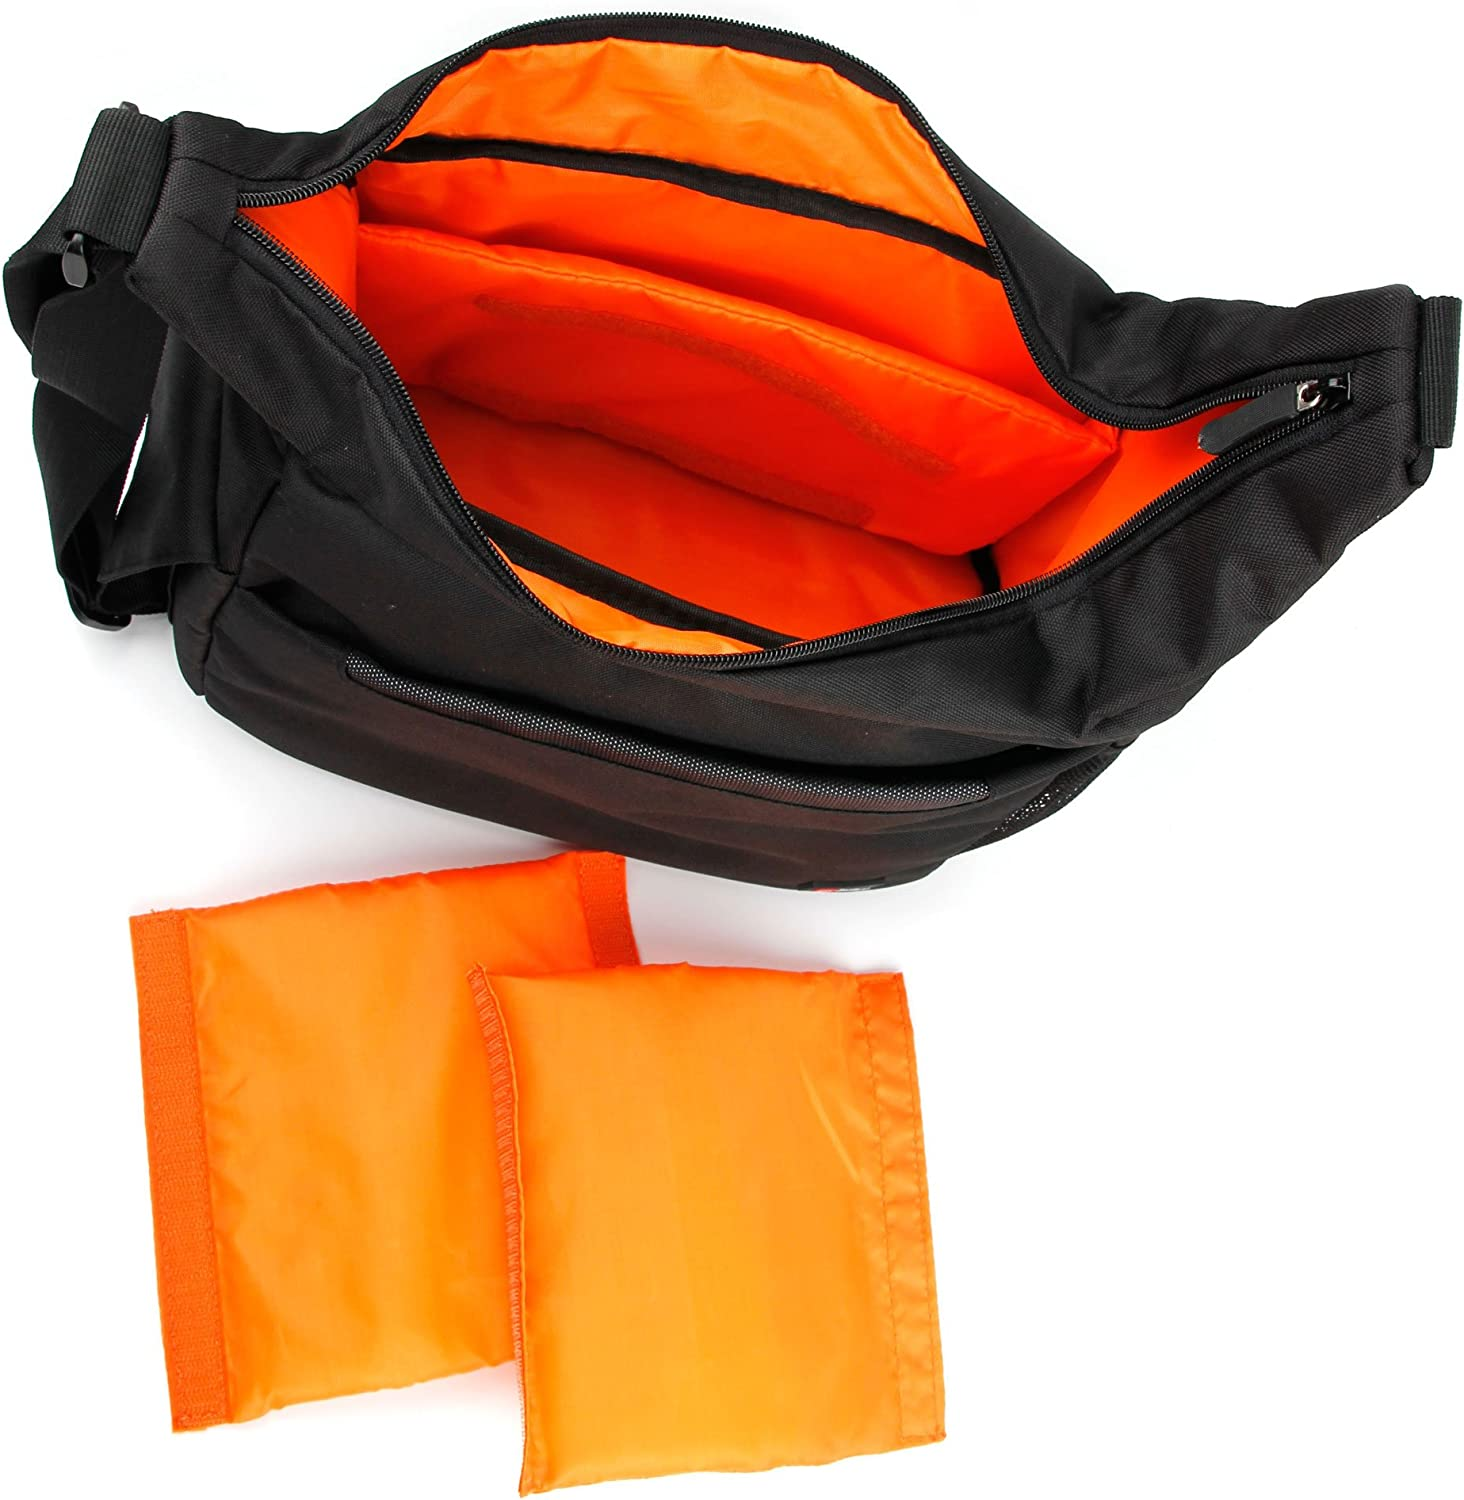 Compatible with Sainlogic 4k Action Cam DURAGADGET Durable Shoulder Sling Bag in Black /& Orange